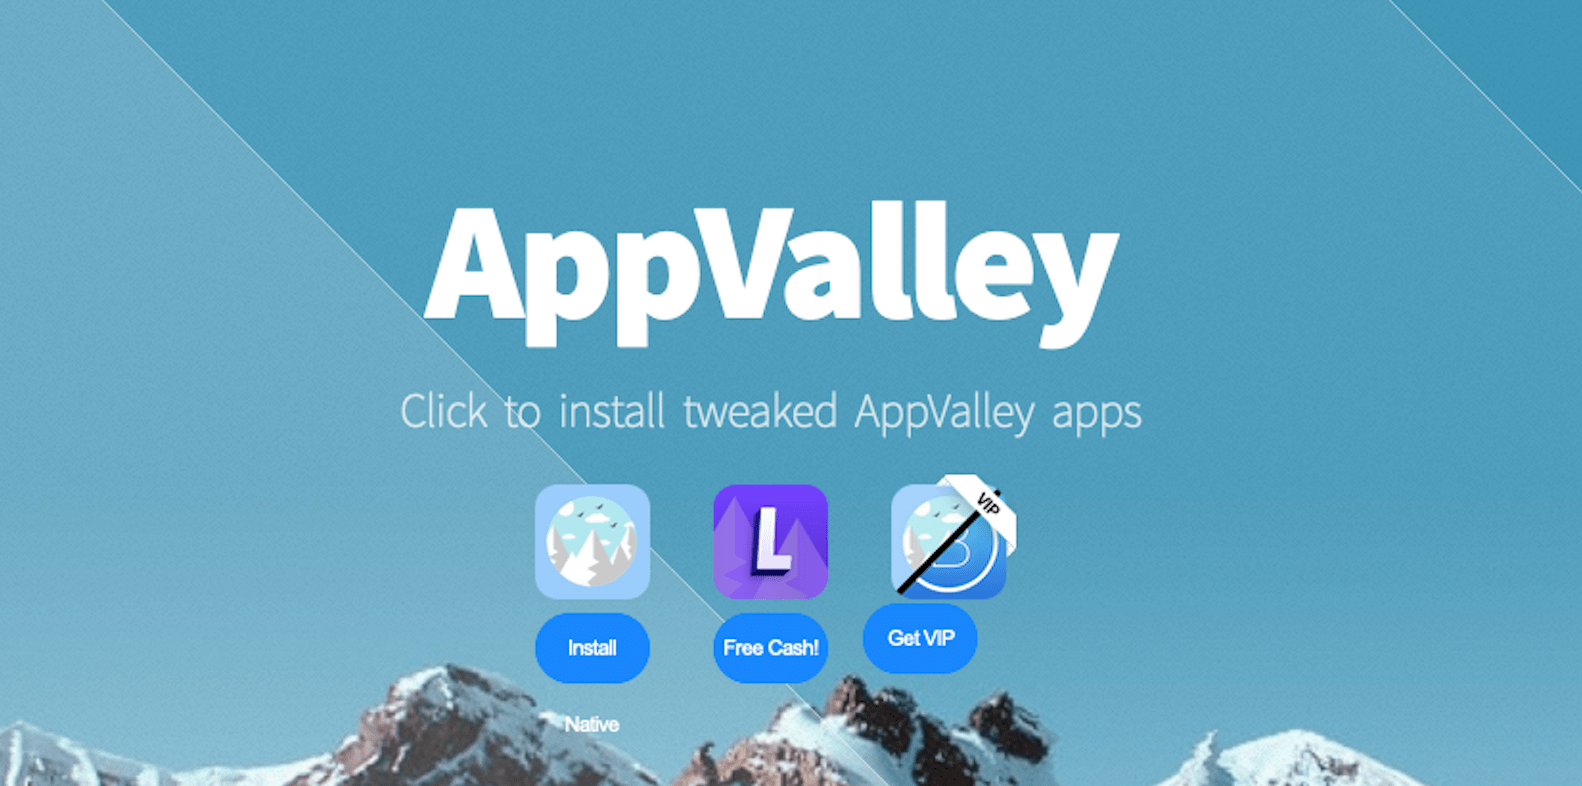 AppValley Download Guide on iOS Devices as Cydia Alternative